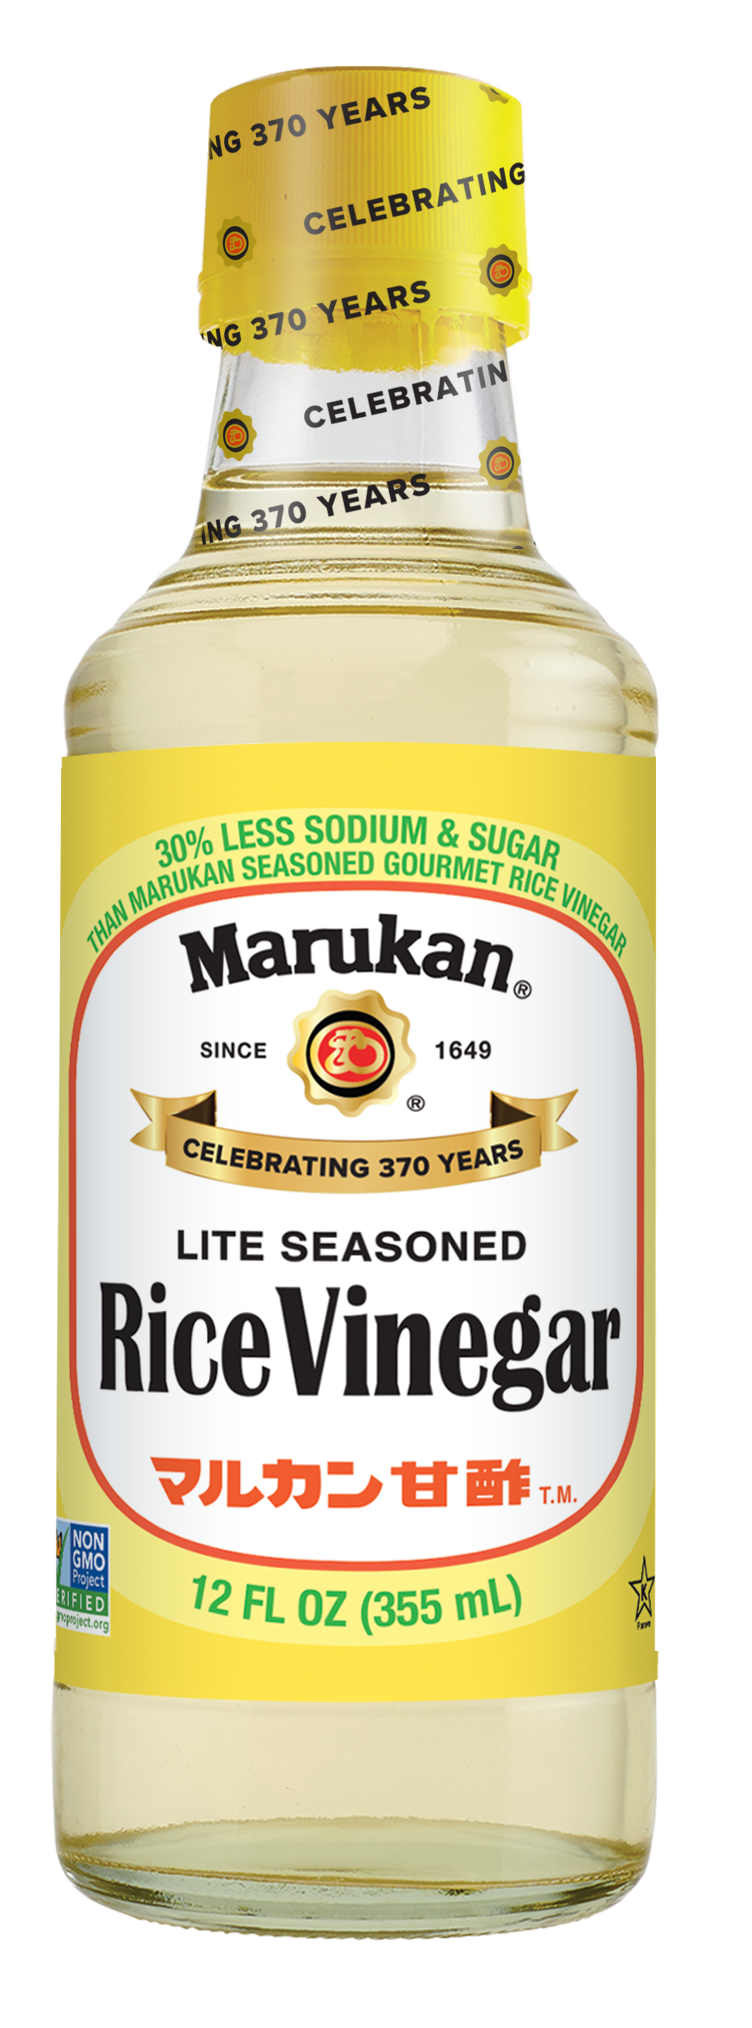 Bottle of Lite Seasoned Rice Vinegar